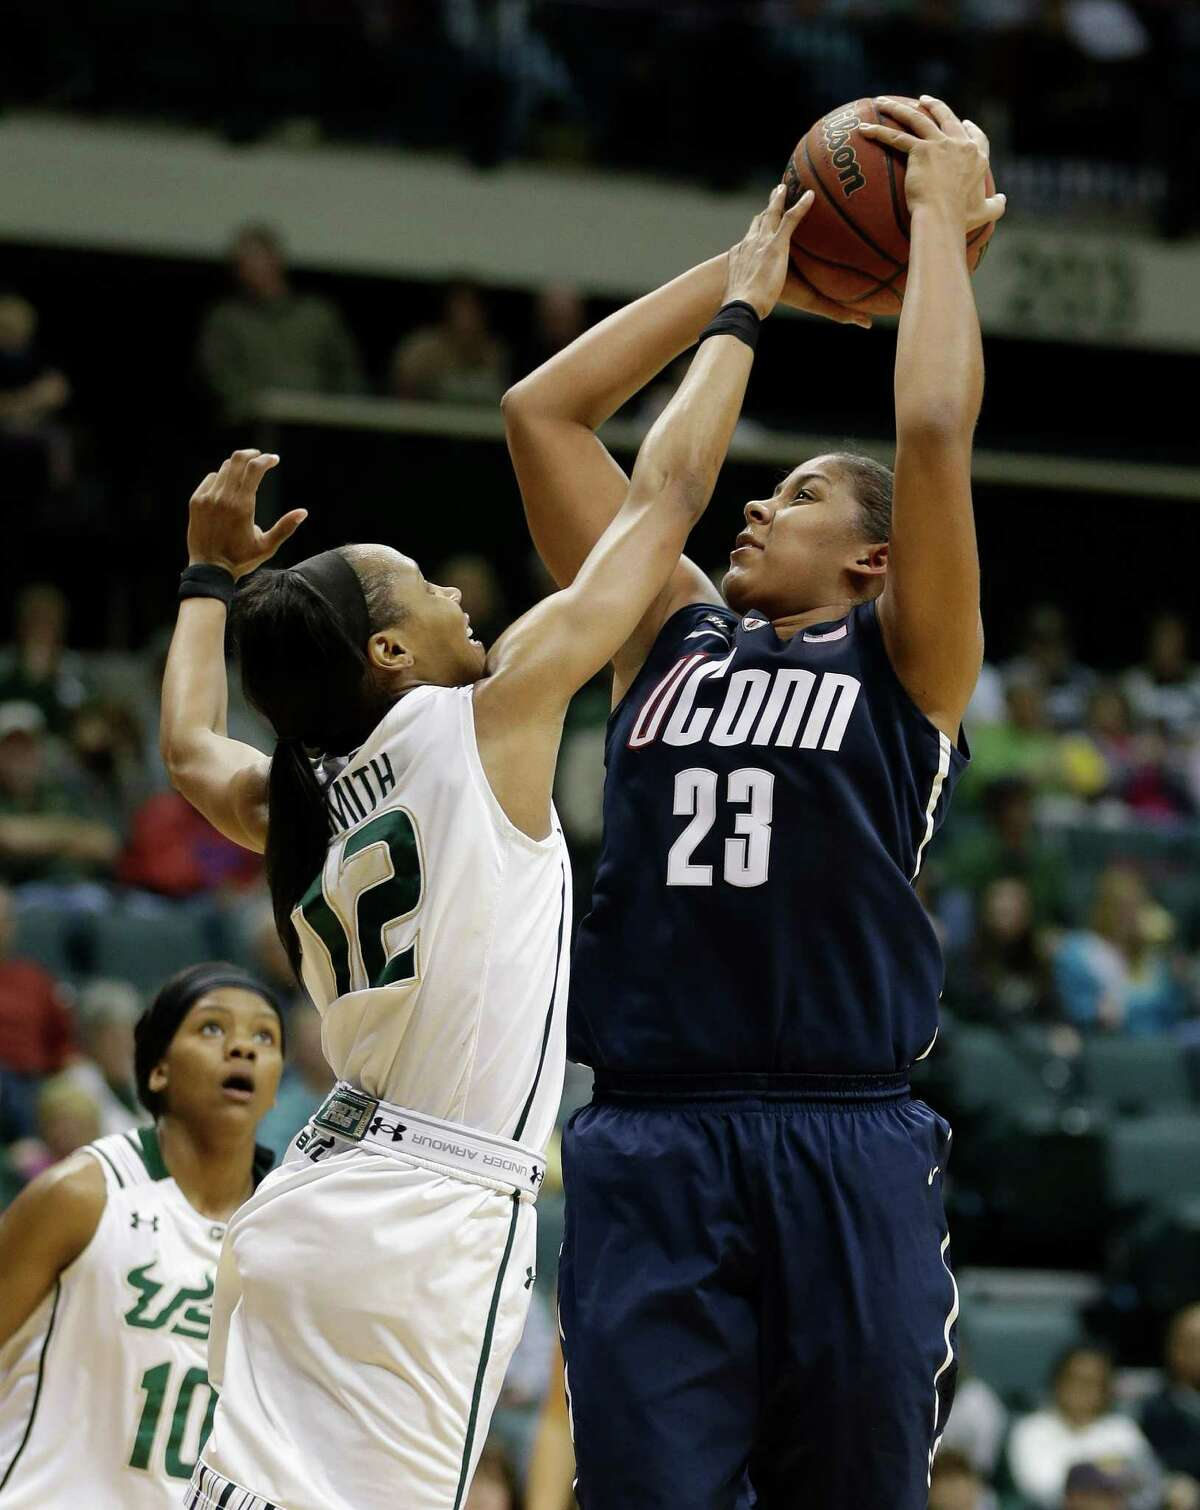 Connecticut forward Kaleena Mosqueda-Lewis (23) shoots over South Florida guard Andrell Smith (12) during the second half of an NCAA women's college basketball game Saturday, March 2, 2013, in Tampa, Fla. Connecticut won the game 85-51. (AP Photo/Chris O'Meara)